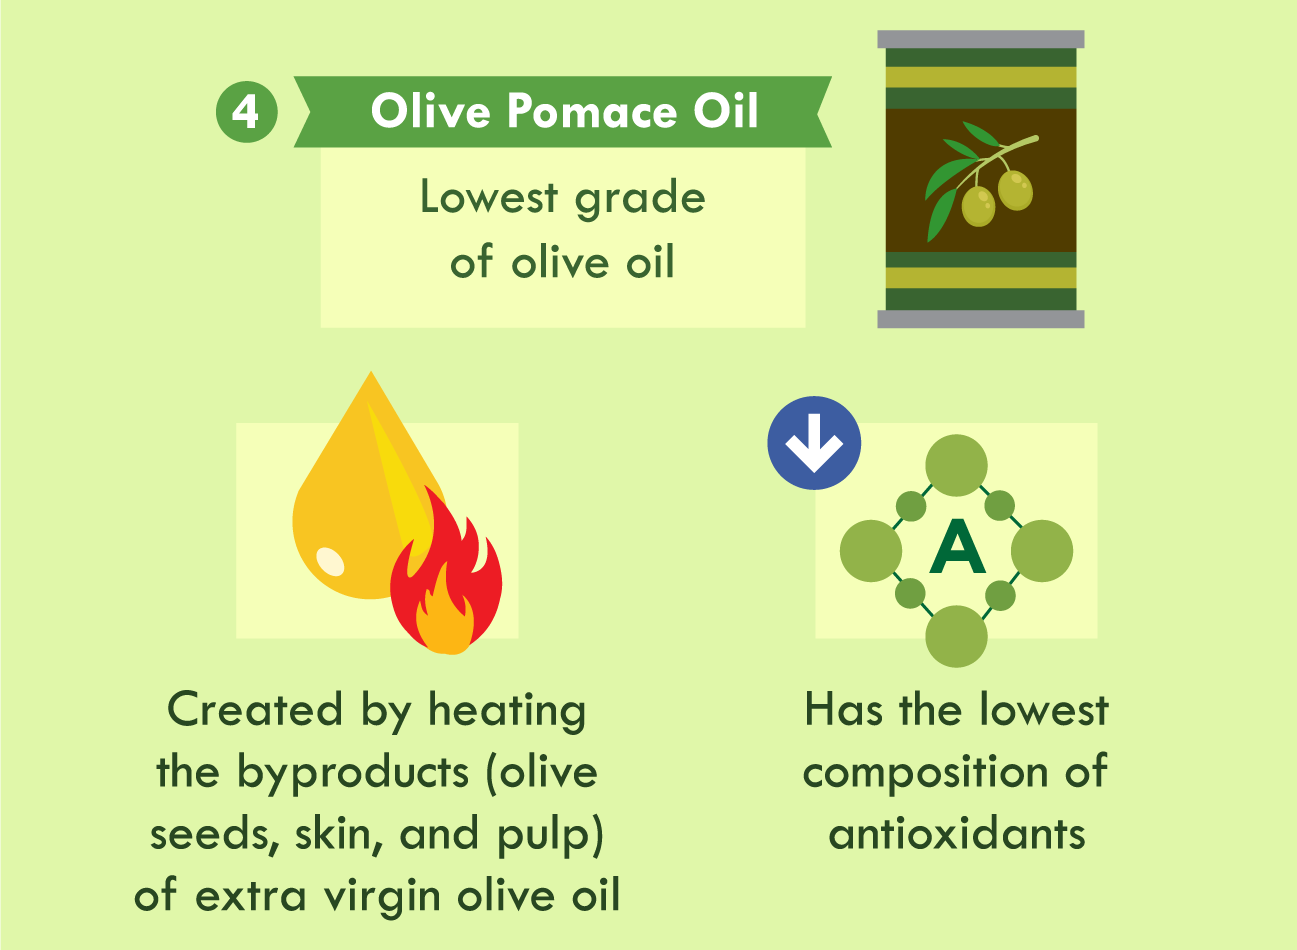 illustration of olive pomace oil